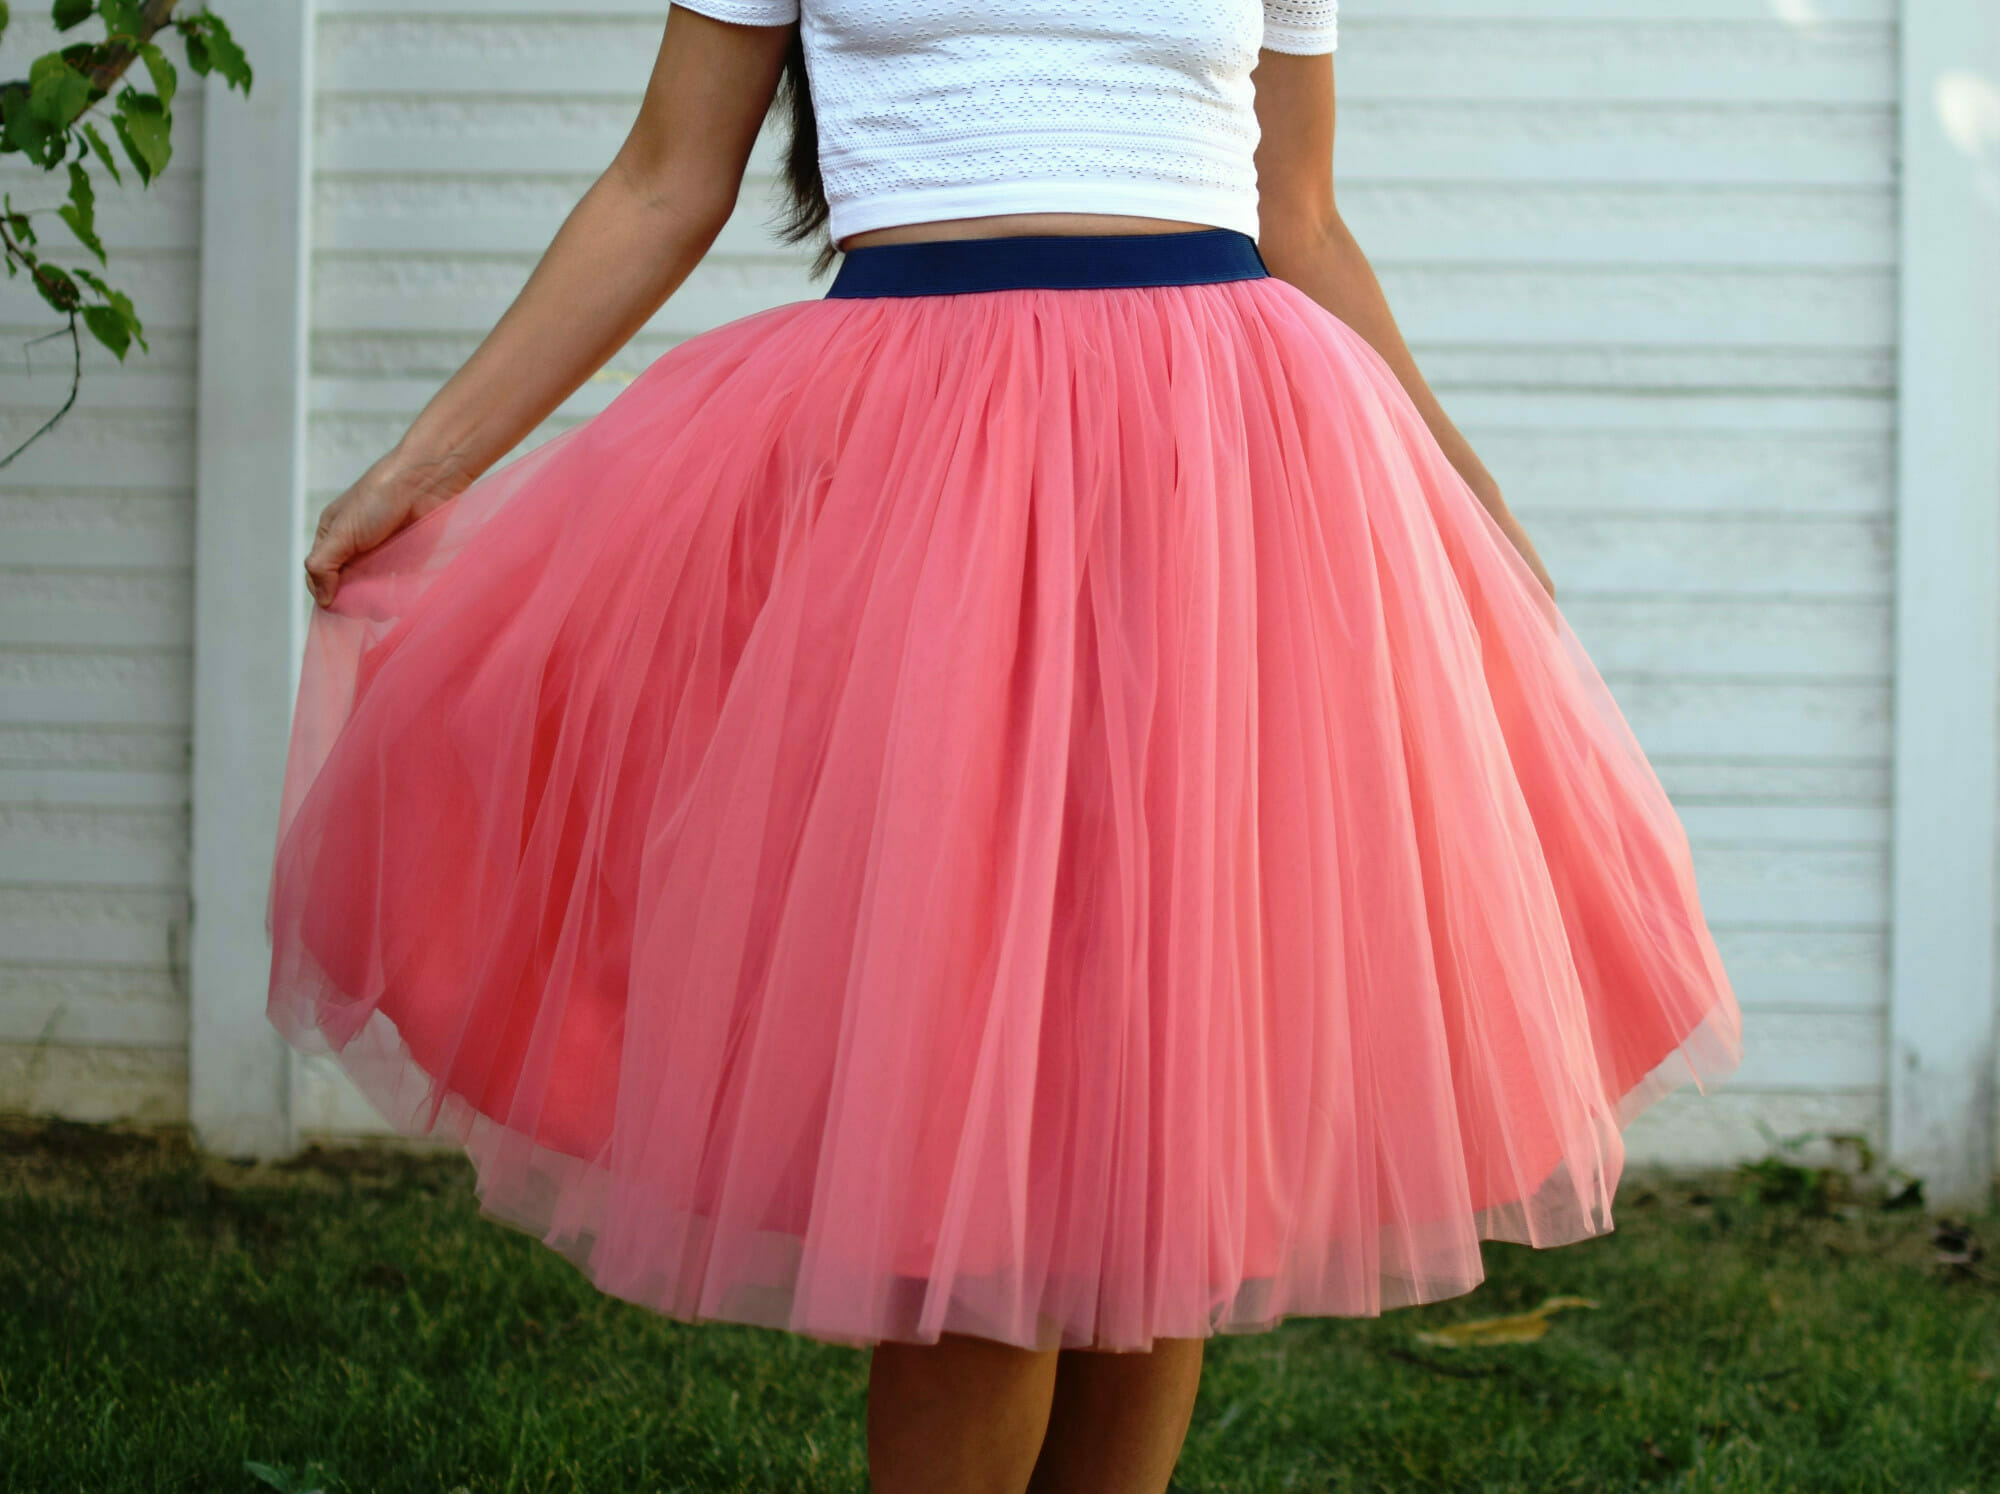 diy pink tulle skirt, elastic waistband, crop top